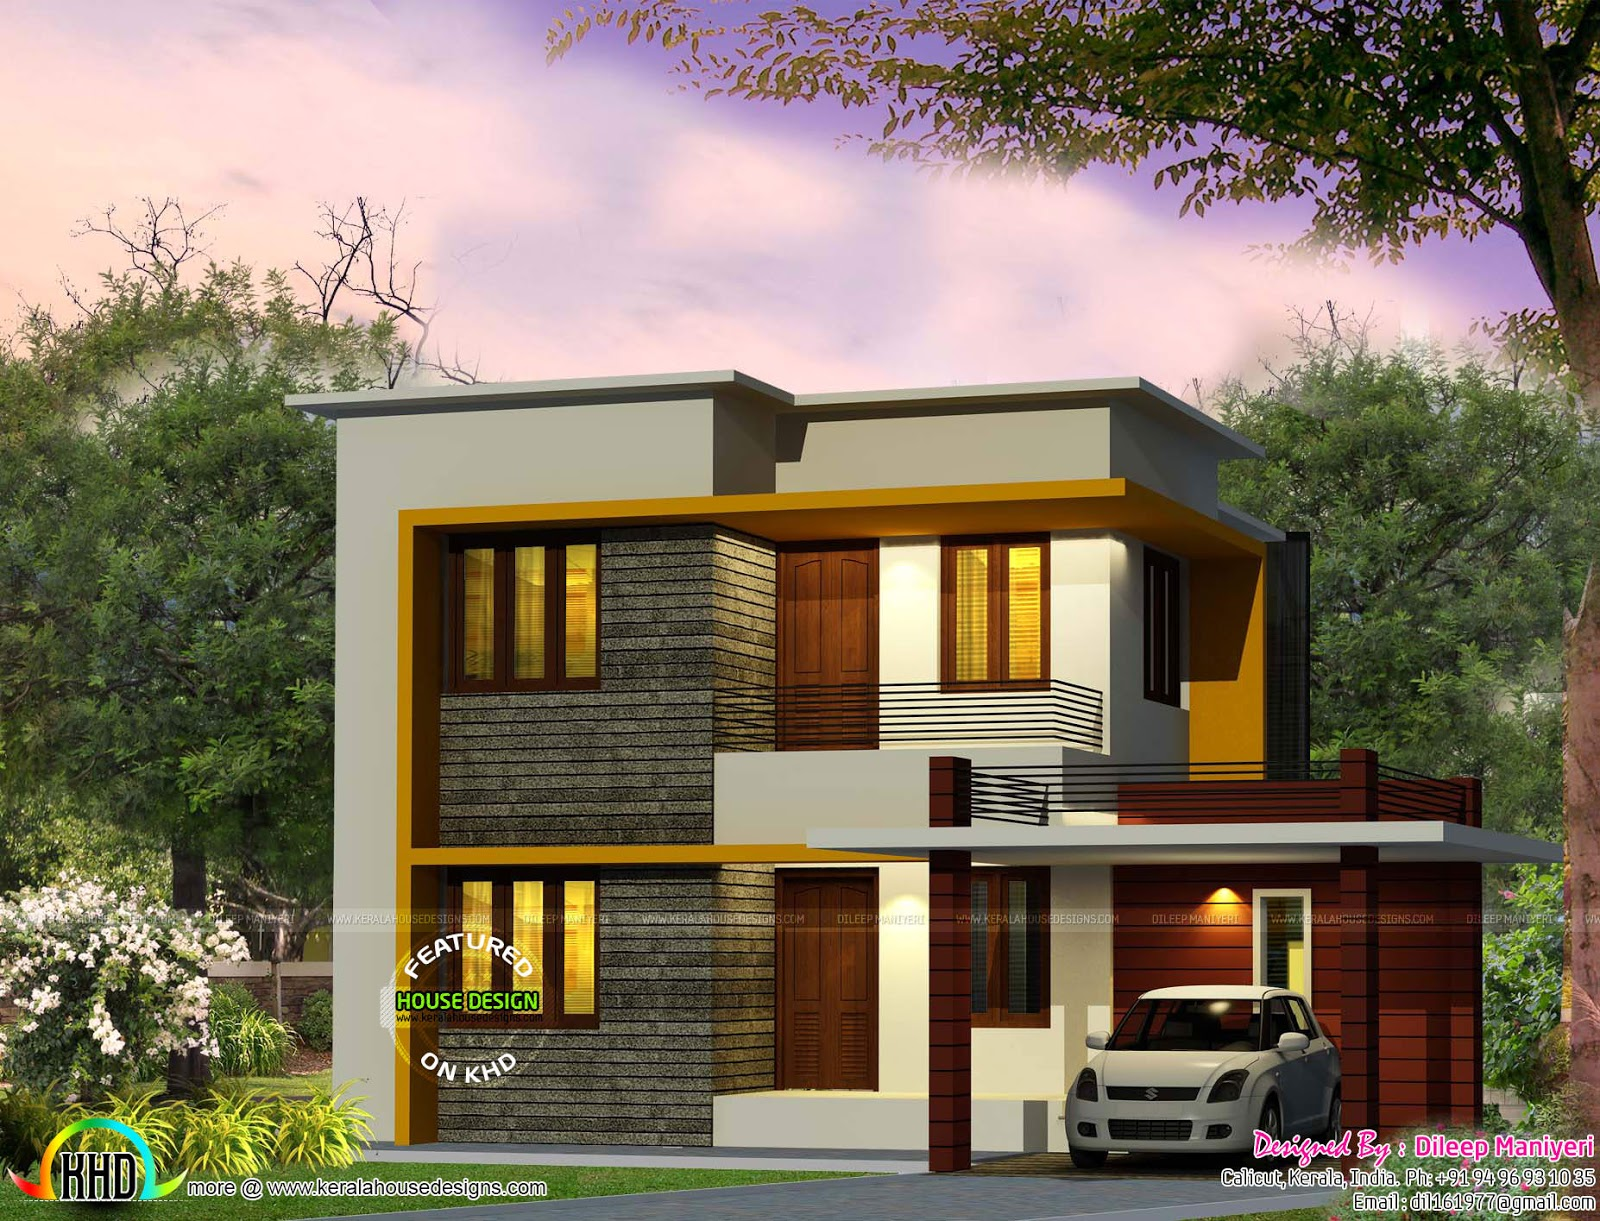 Cute 4 bedroom modern house 1670 sq ft kerala home for 2 bedroom modern house plans